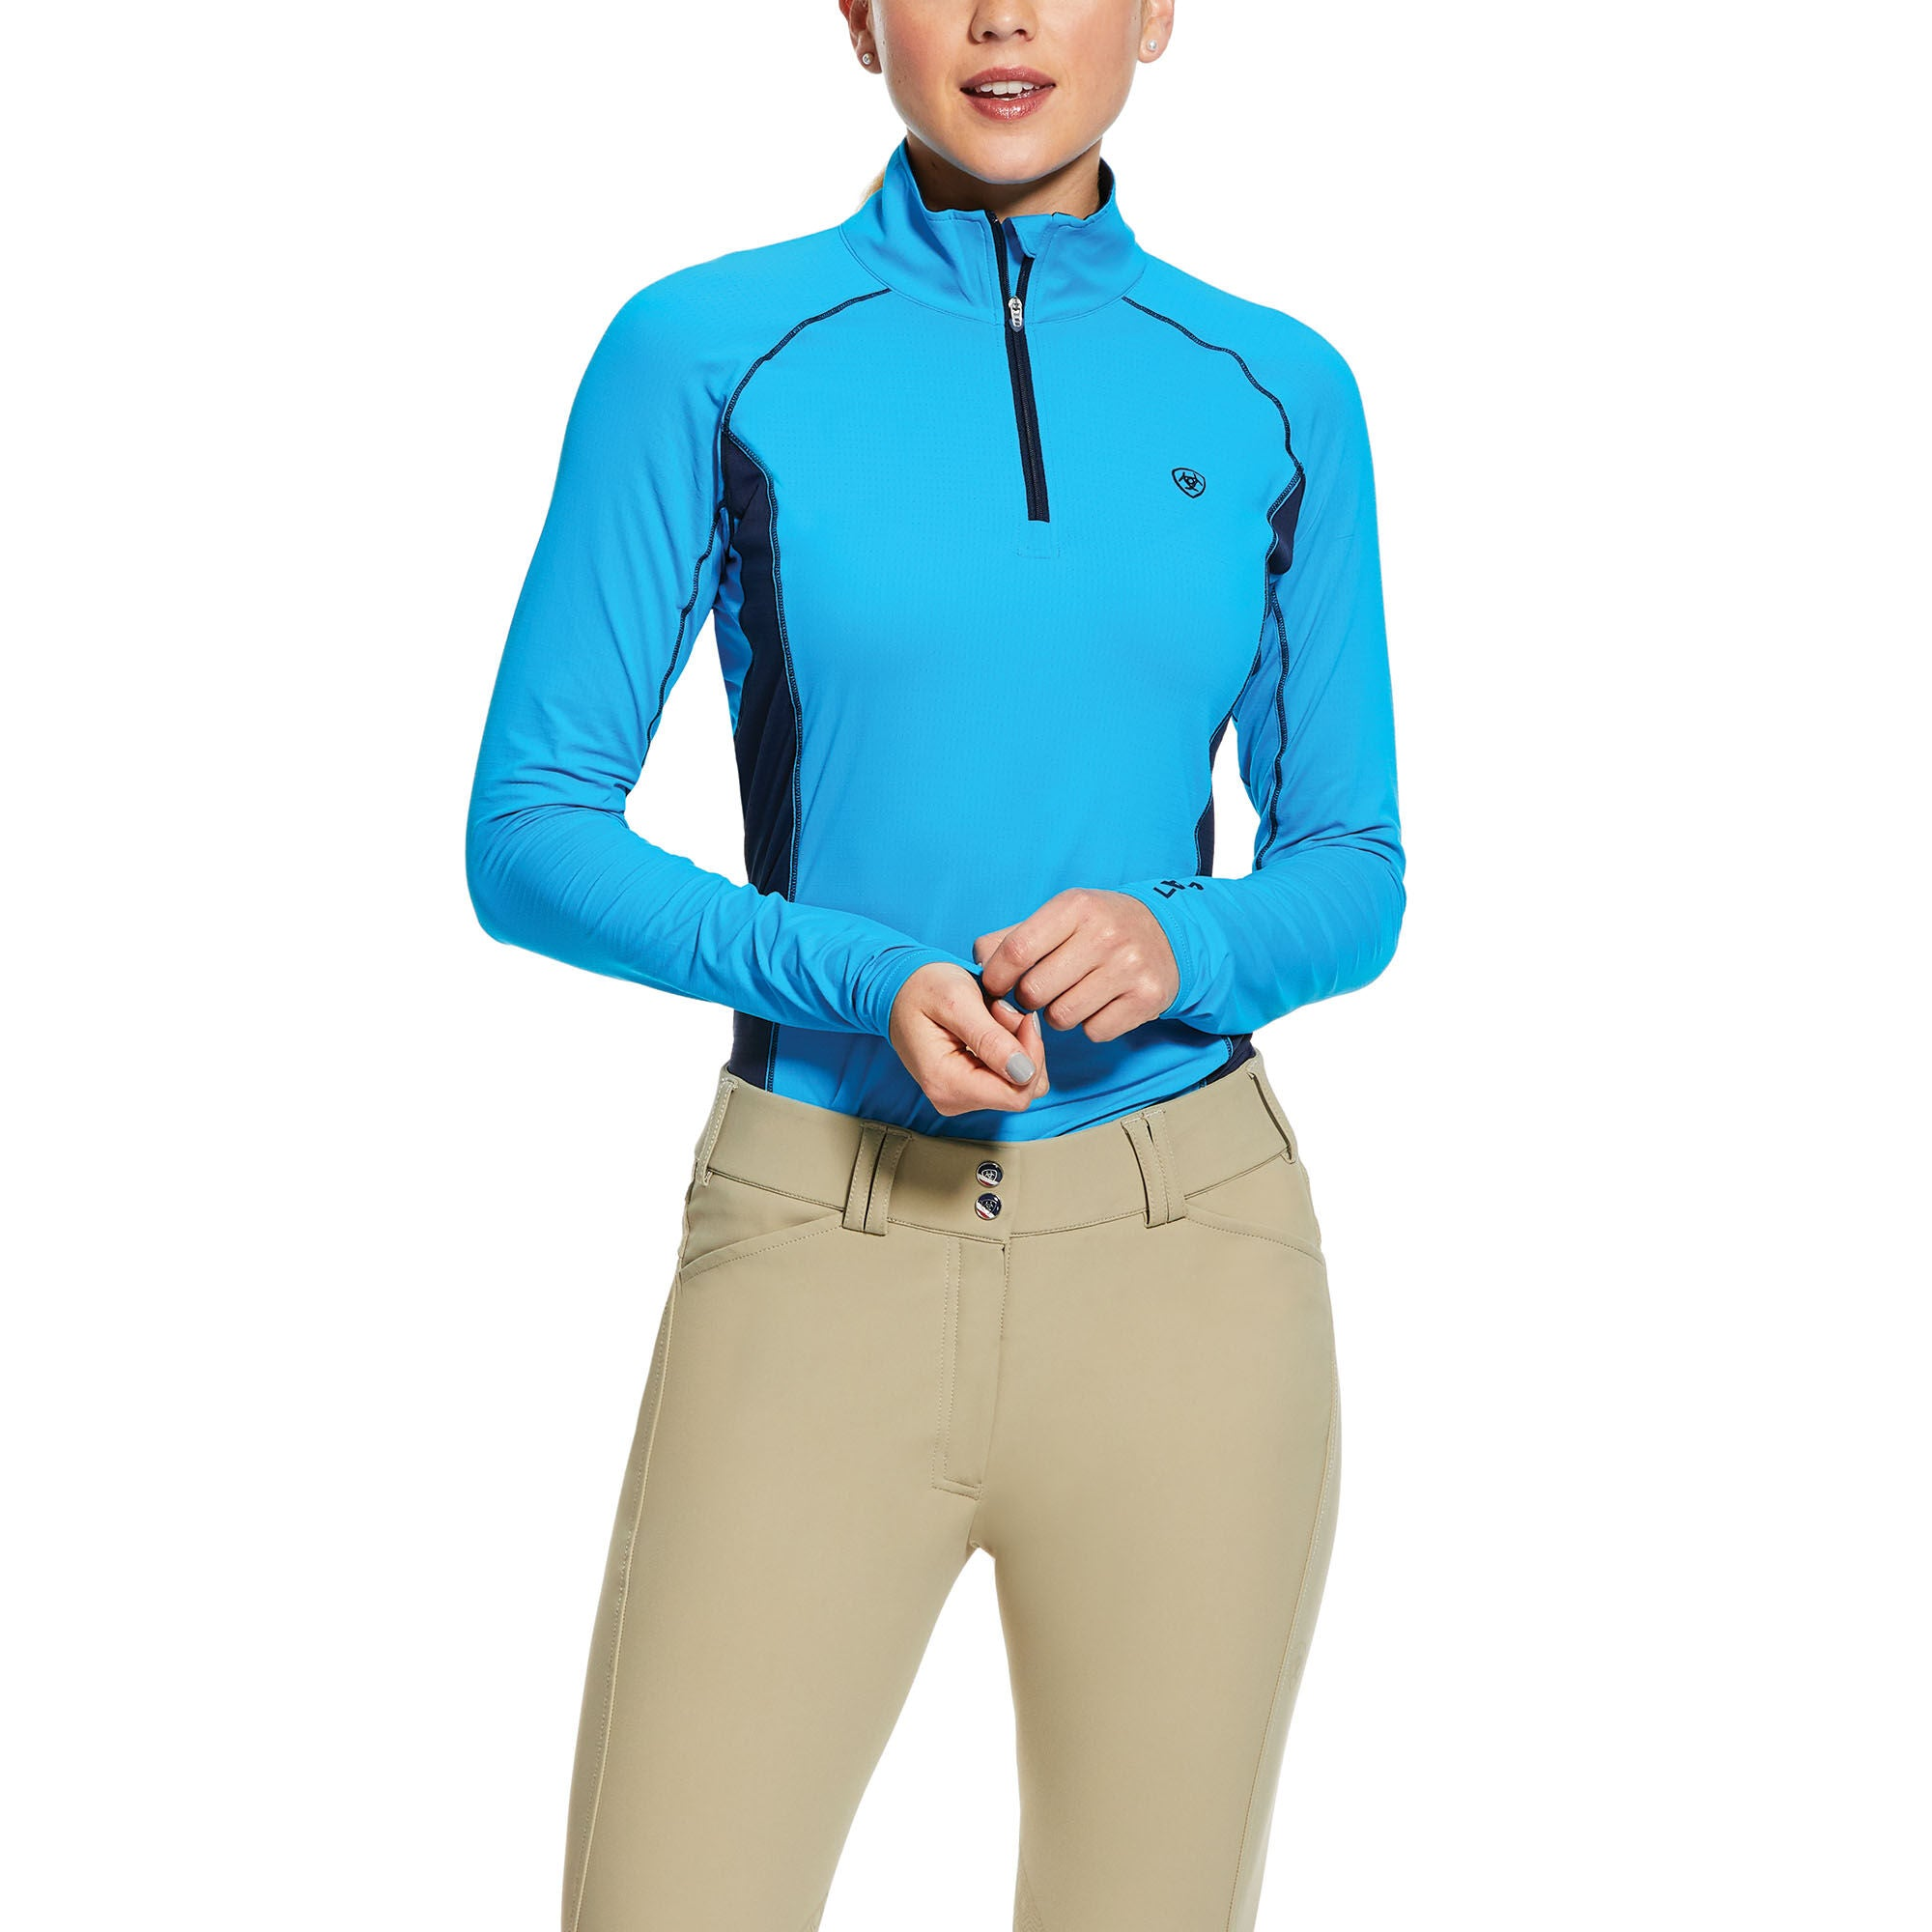 Ariat Tri Factor 1/4 Zip Baselayer Shirt - North Shore Saddlery